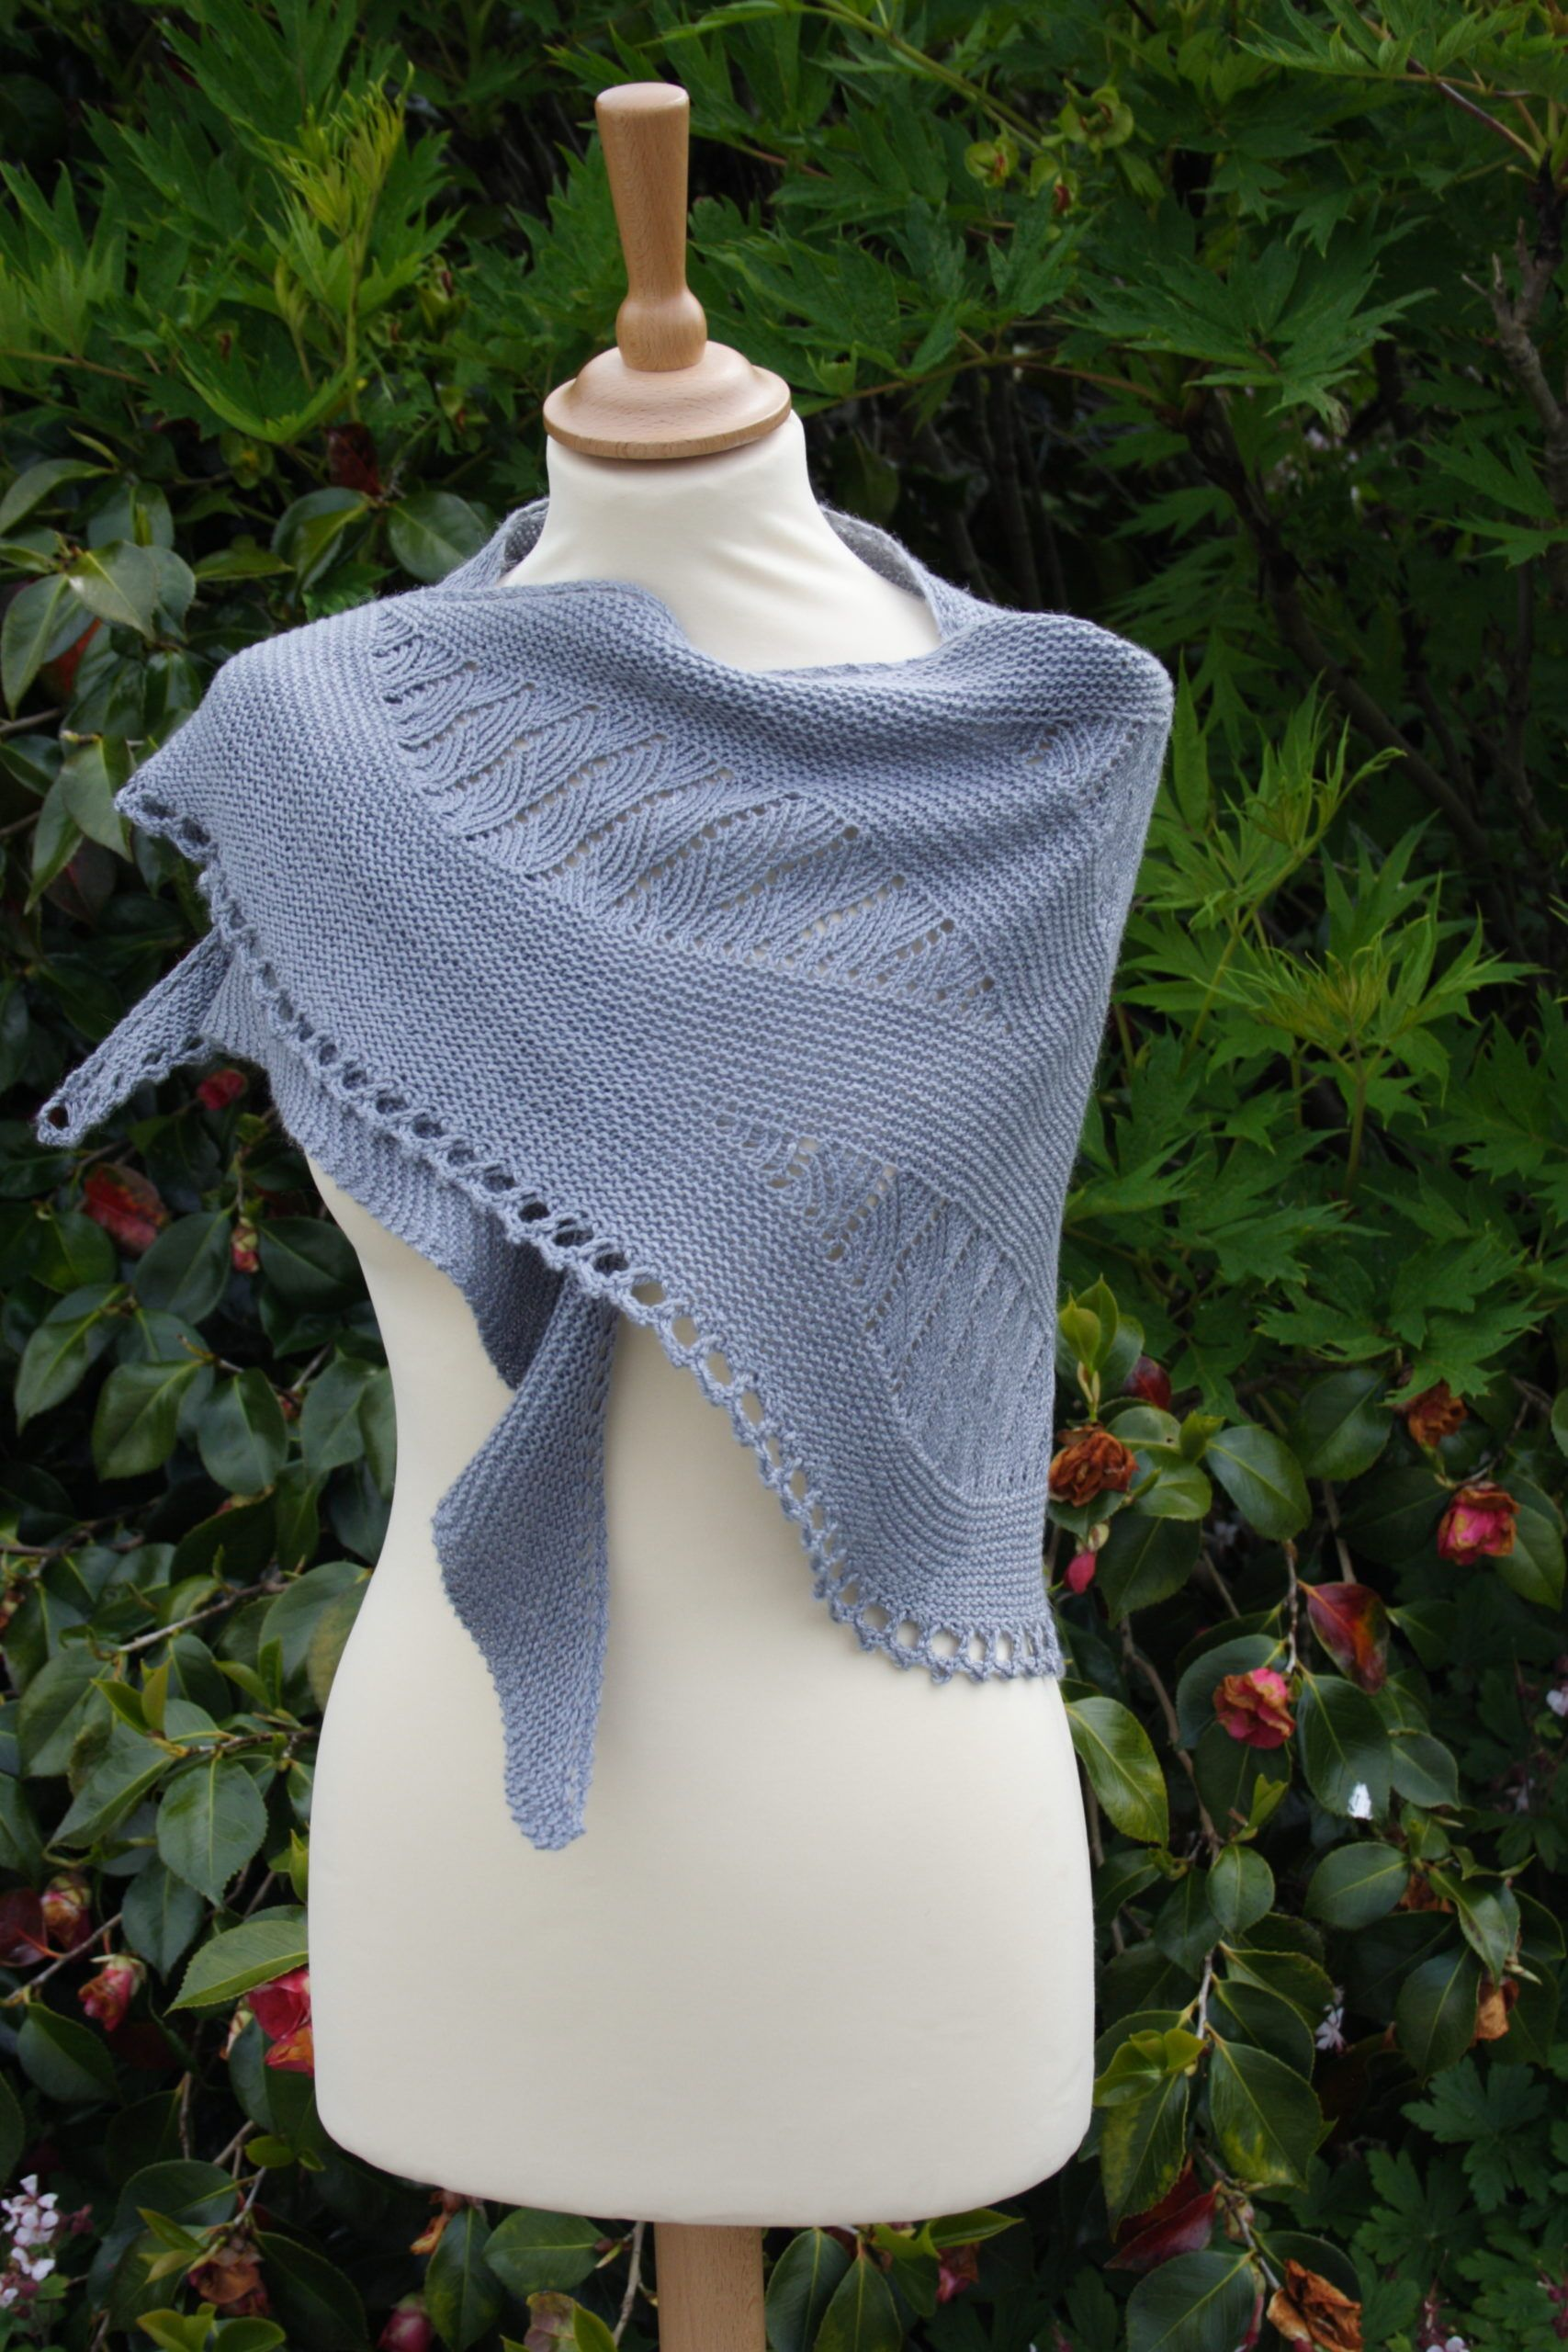 Water shawl in Whitbarrow